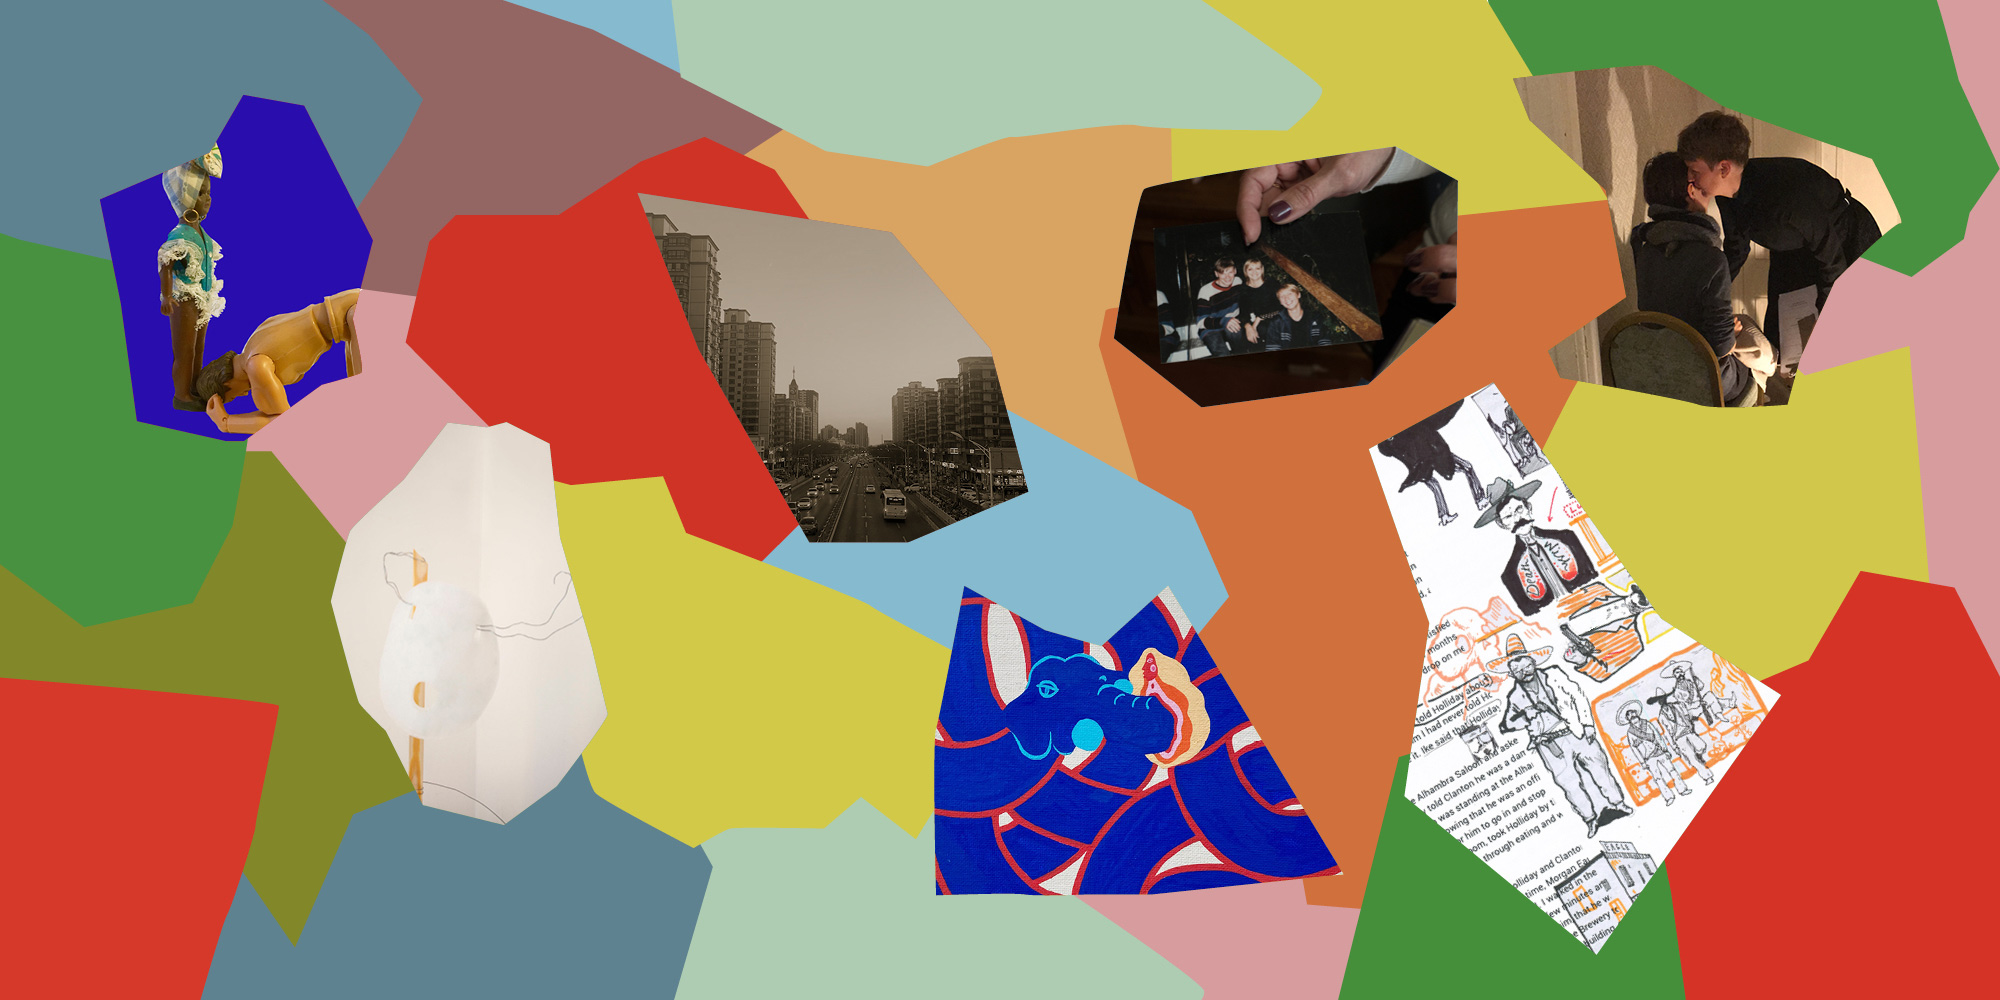 A collage featuring the work of our PhD students.